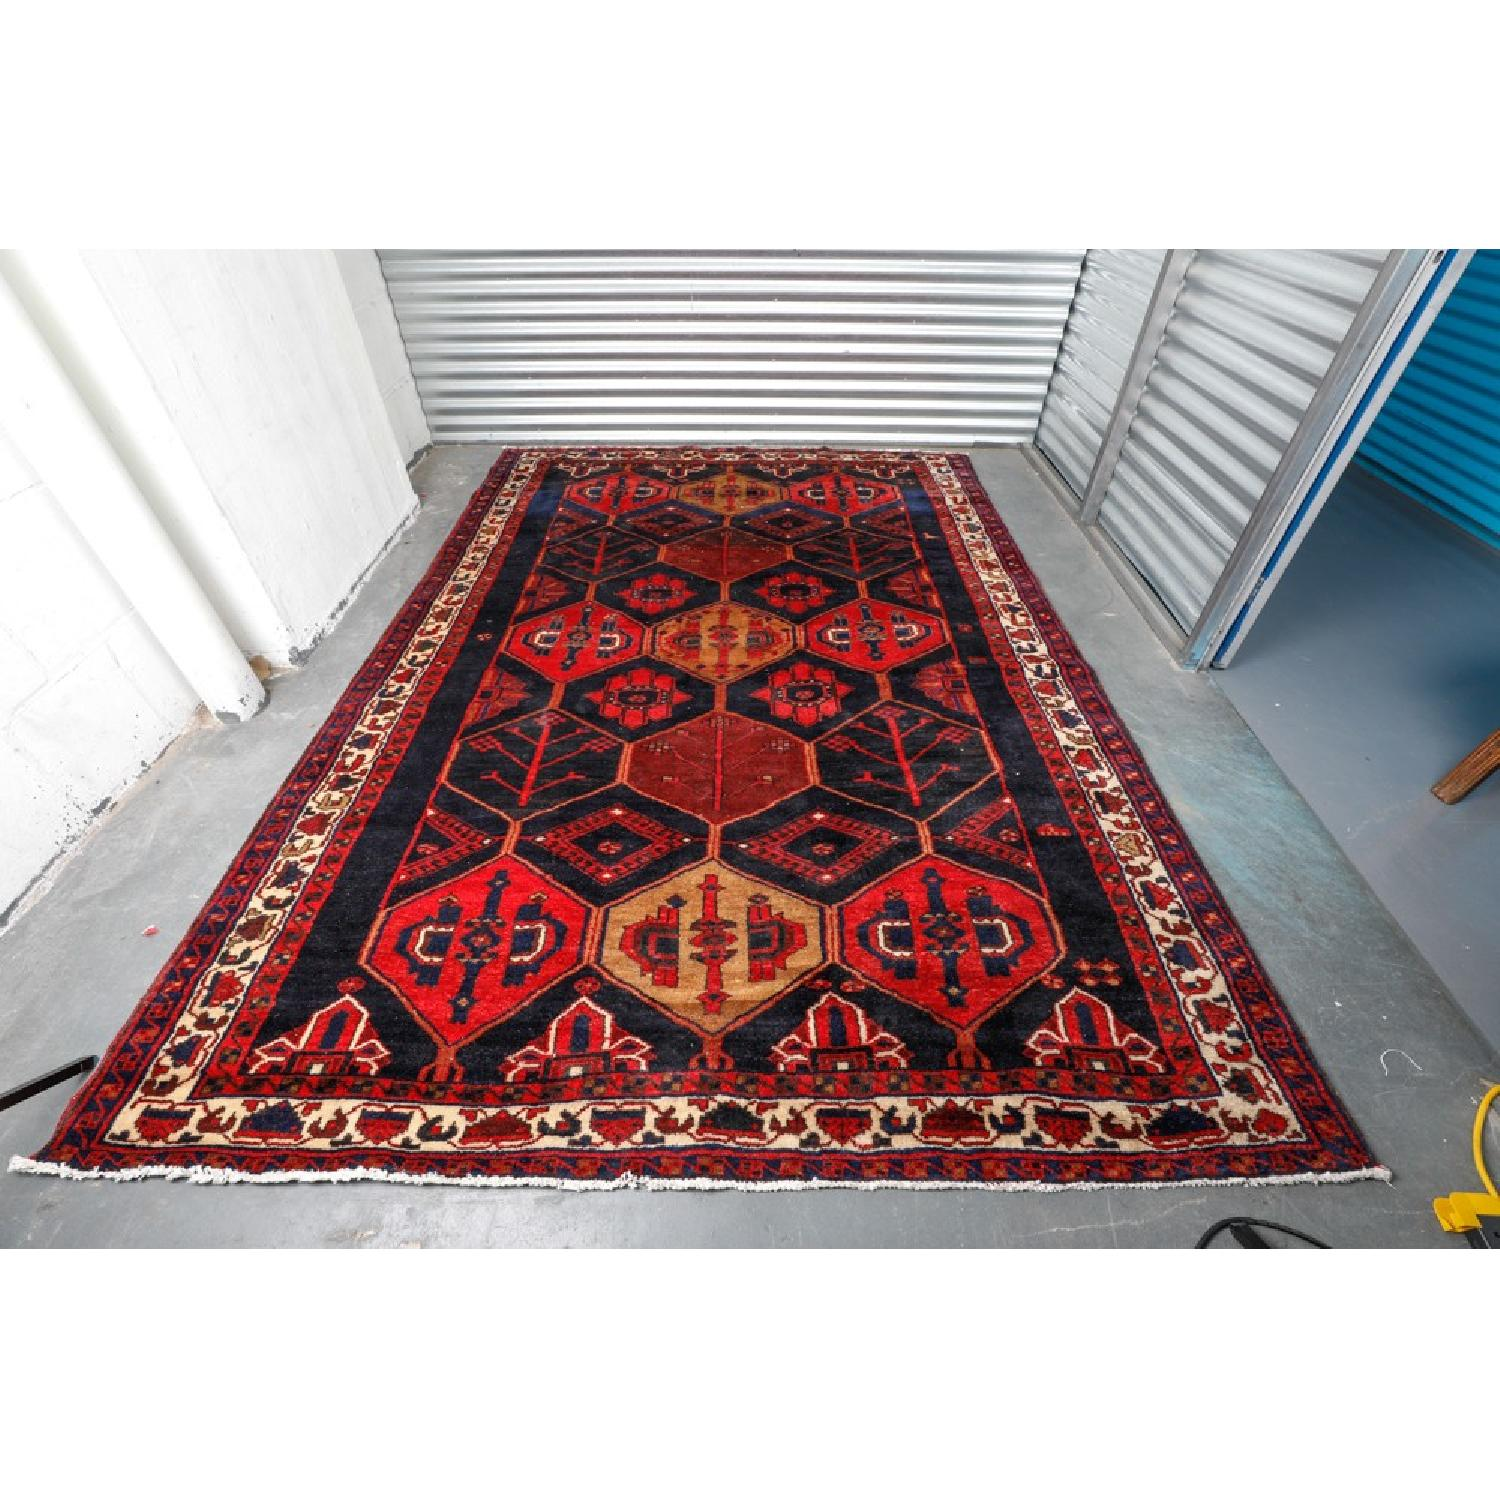 ABC Carpet and Home Patterned Area Rug-0